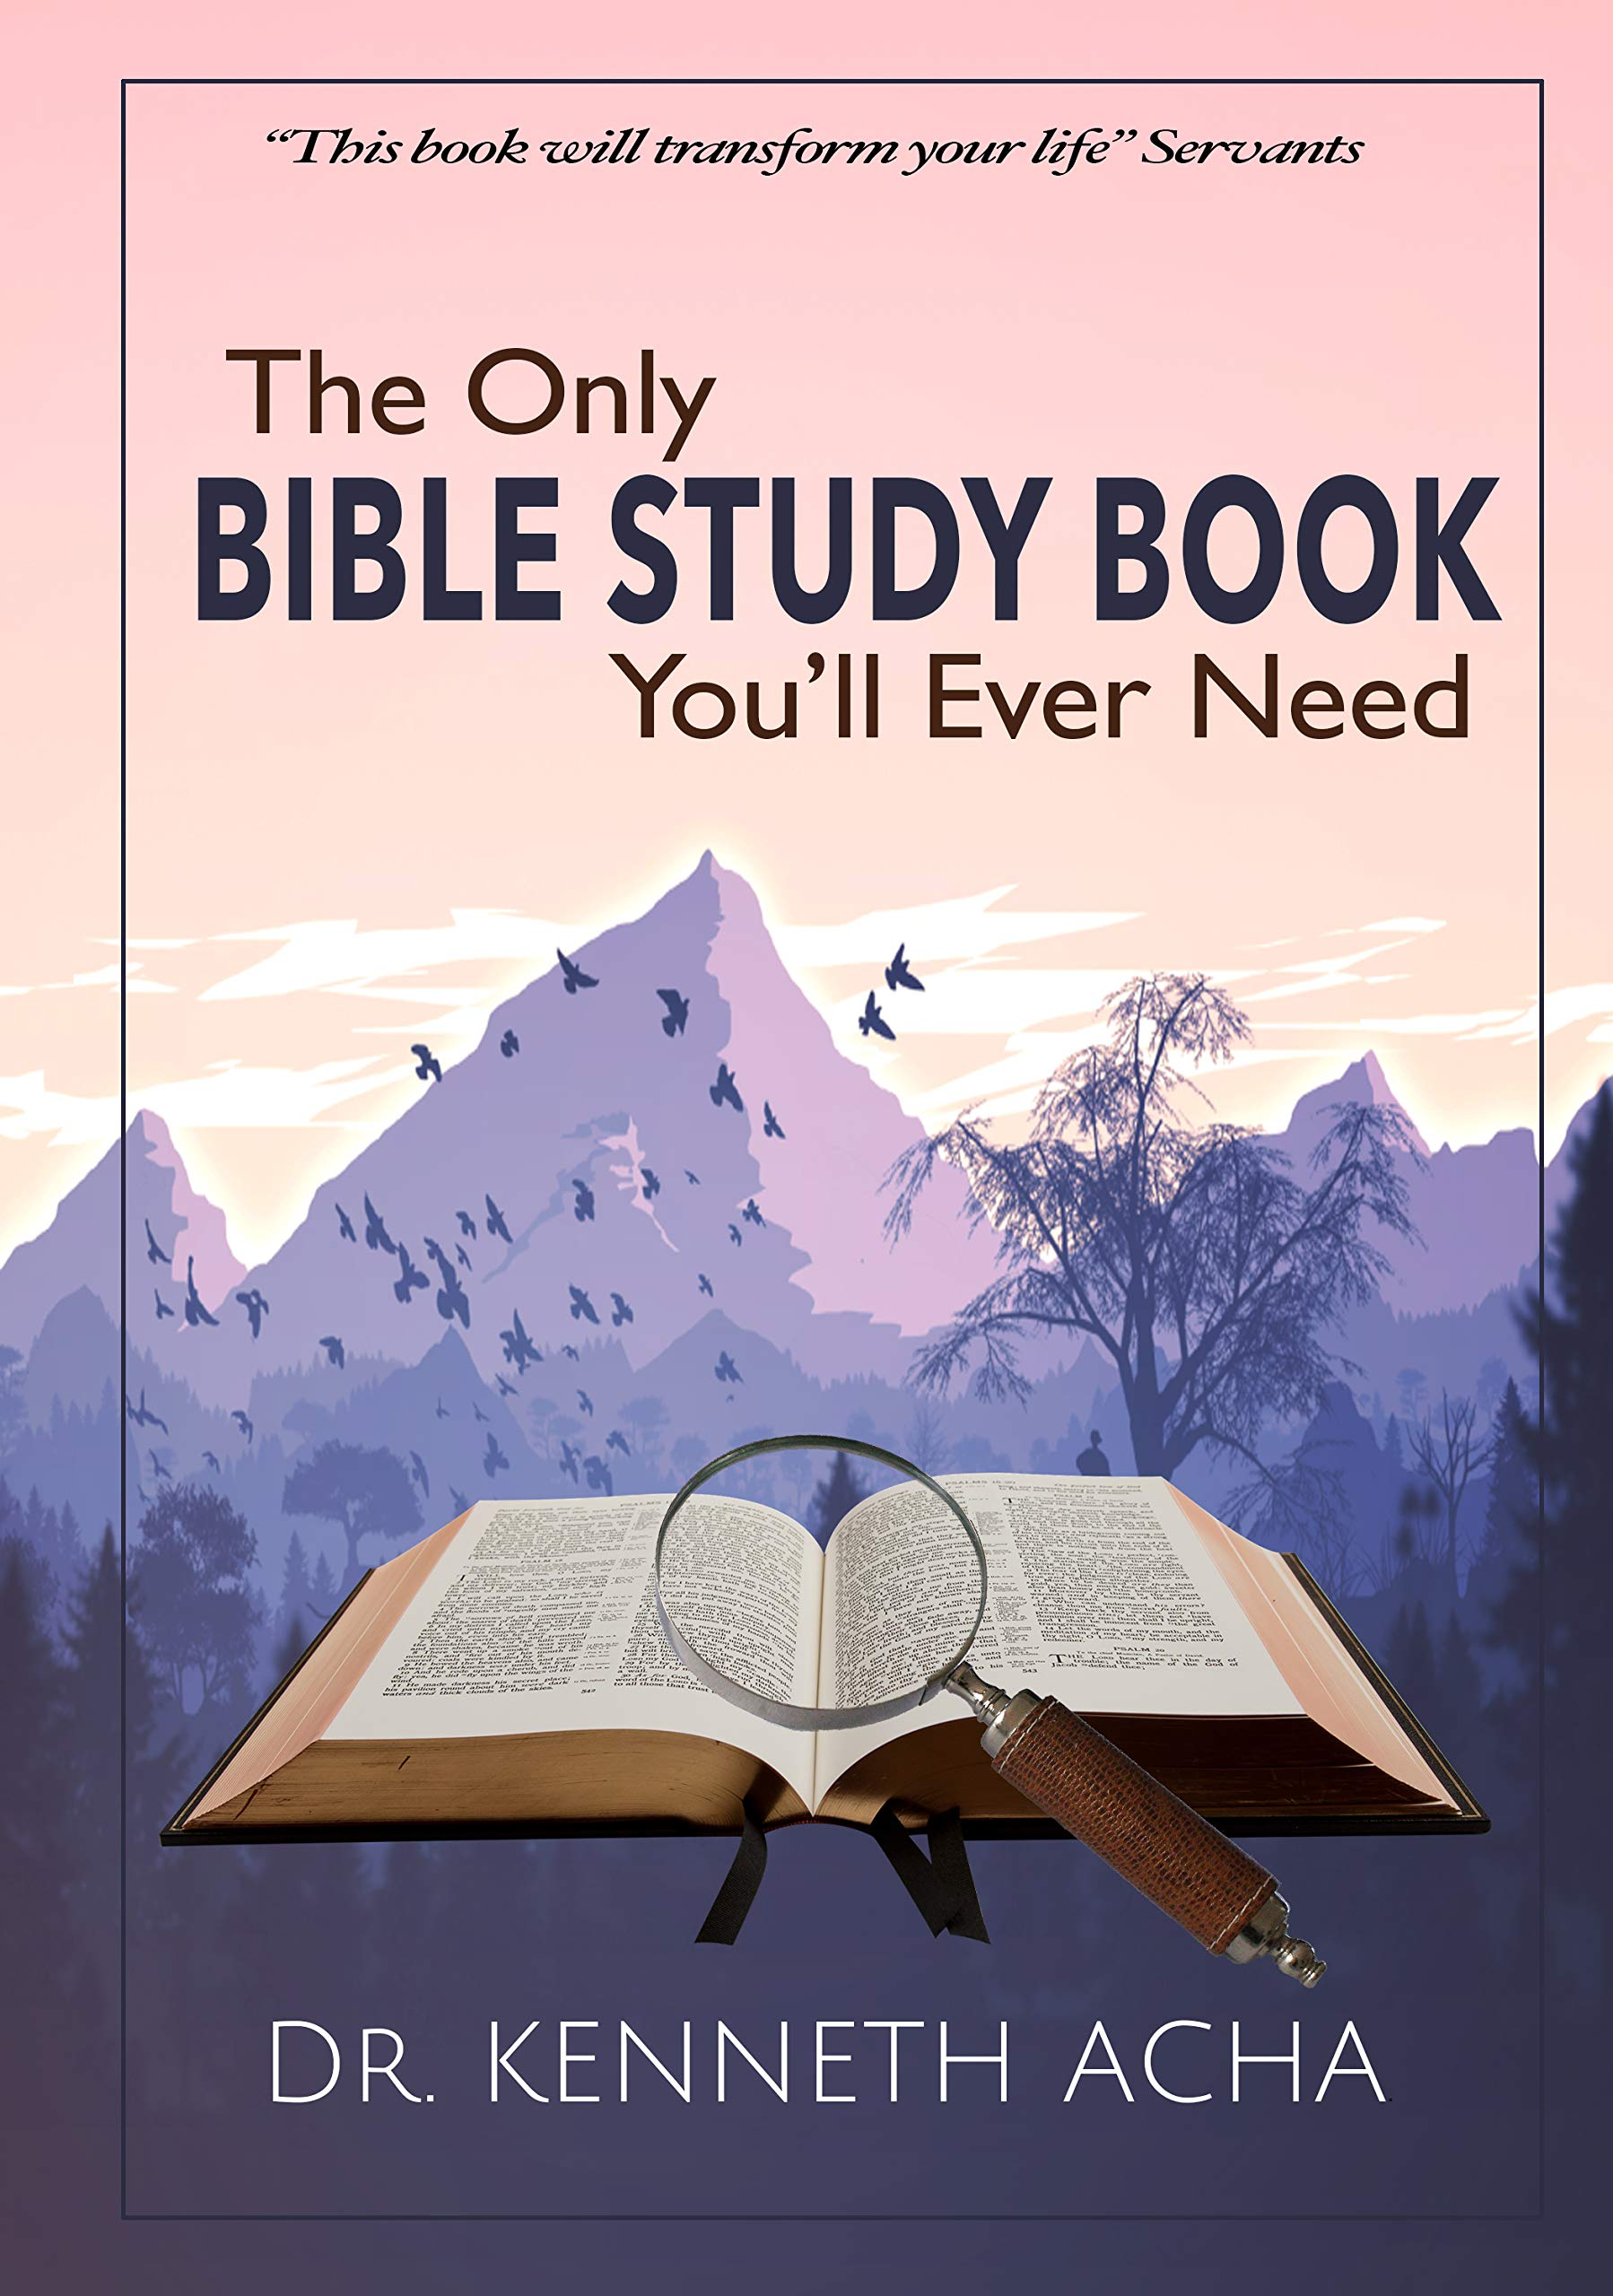 The Only Bible Study Book You'll Ever Need: How to Read, Interpret, and Apply God's Word